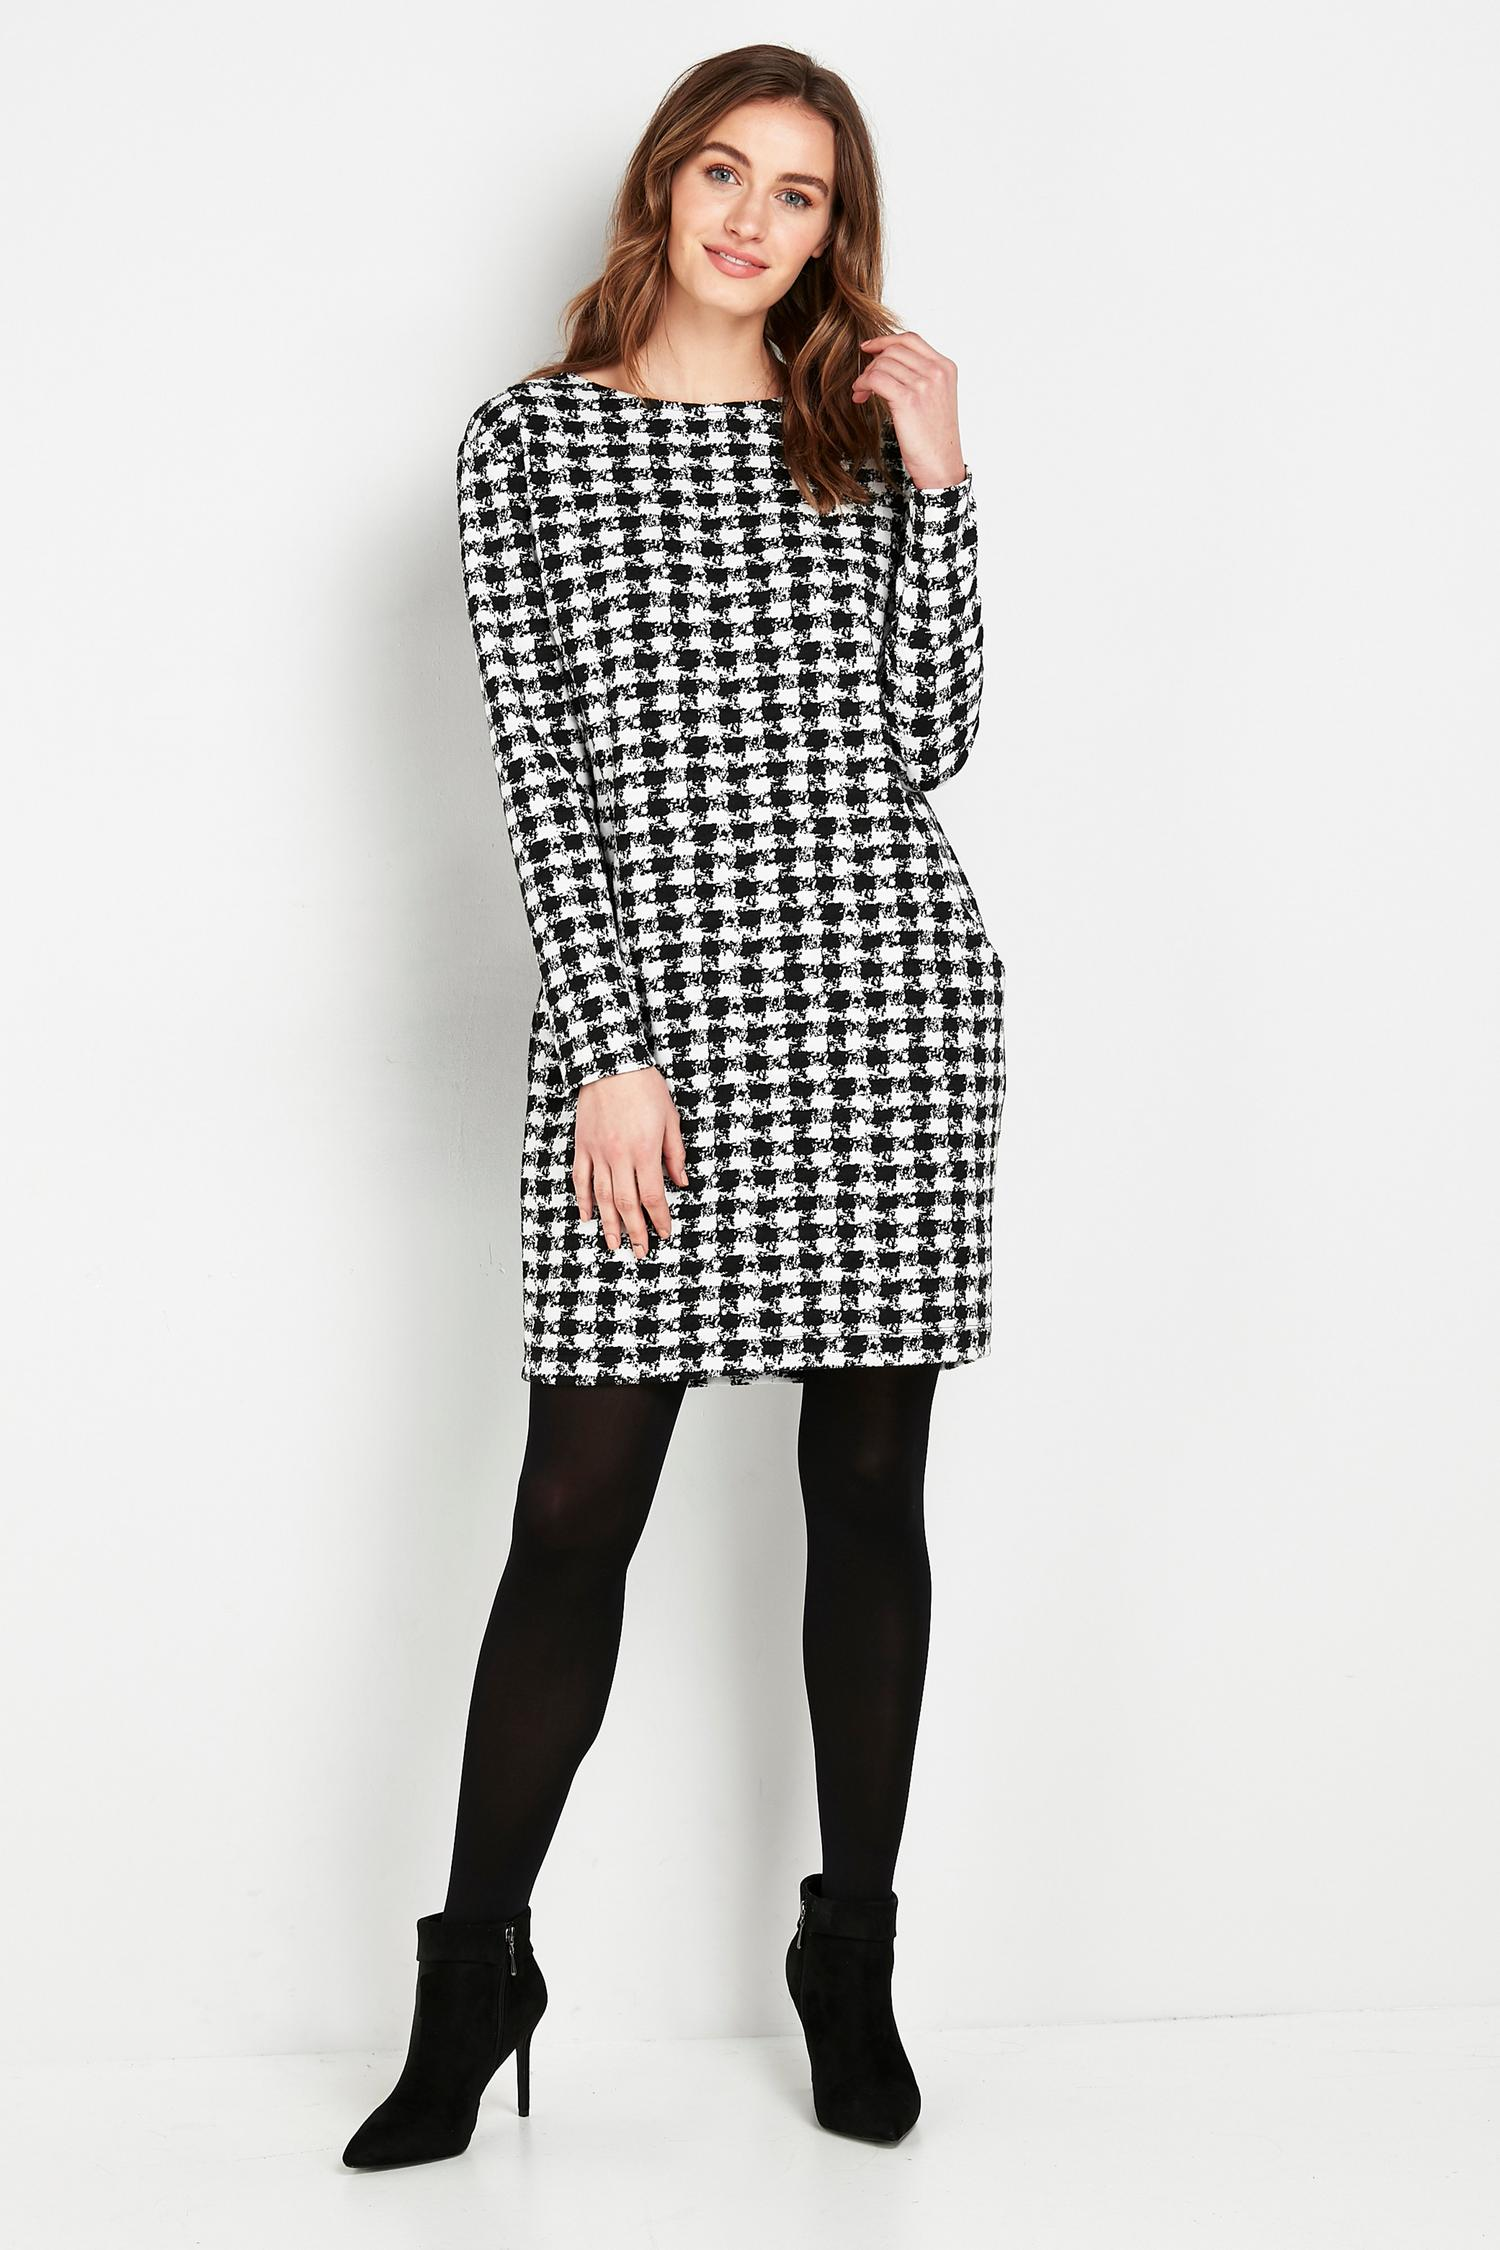 105 Monochrome Dogtooth Print Dress image number 1